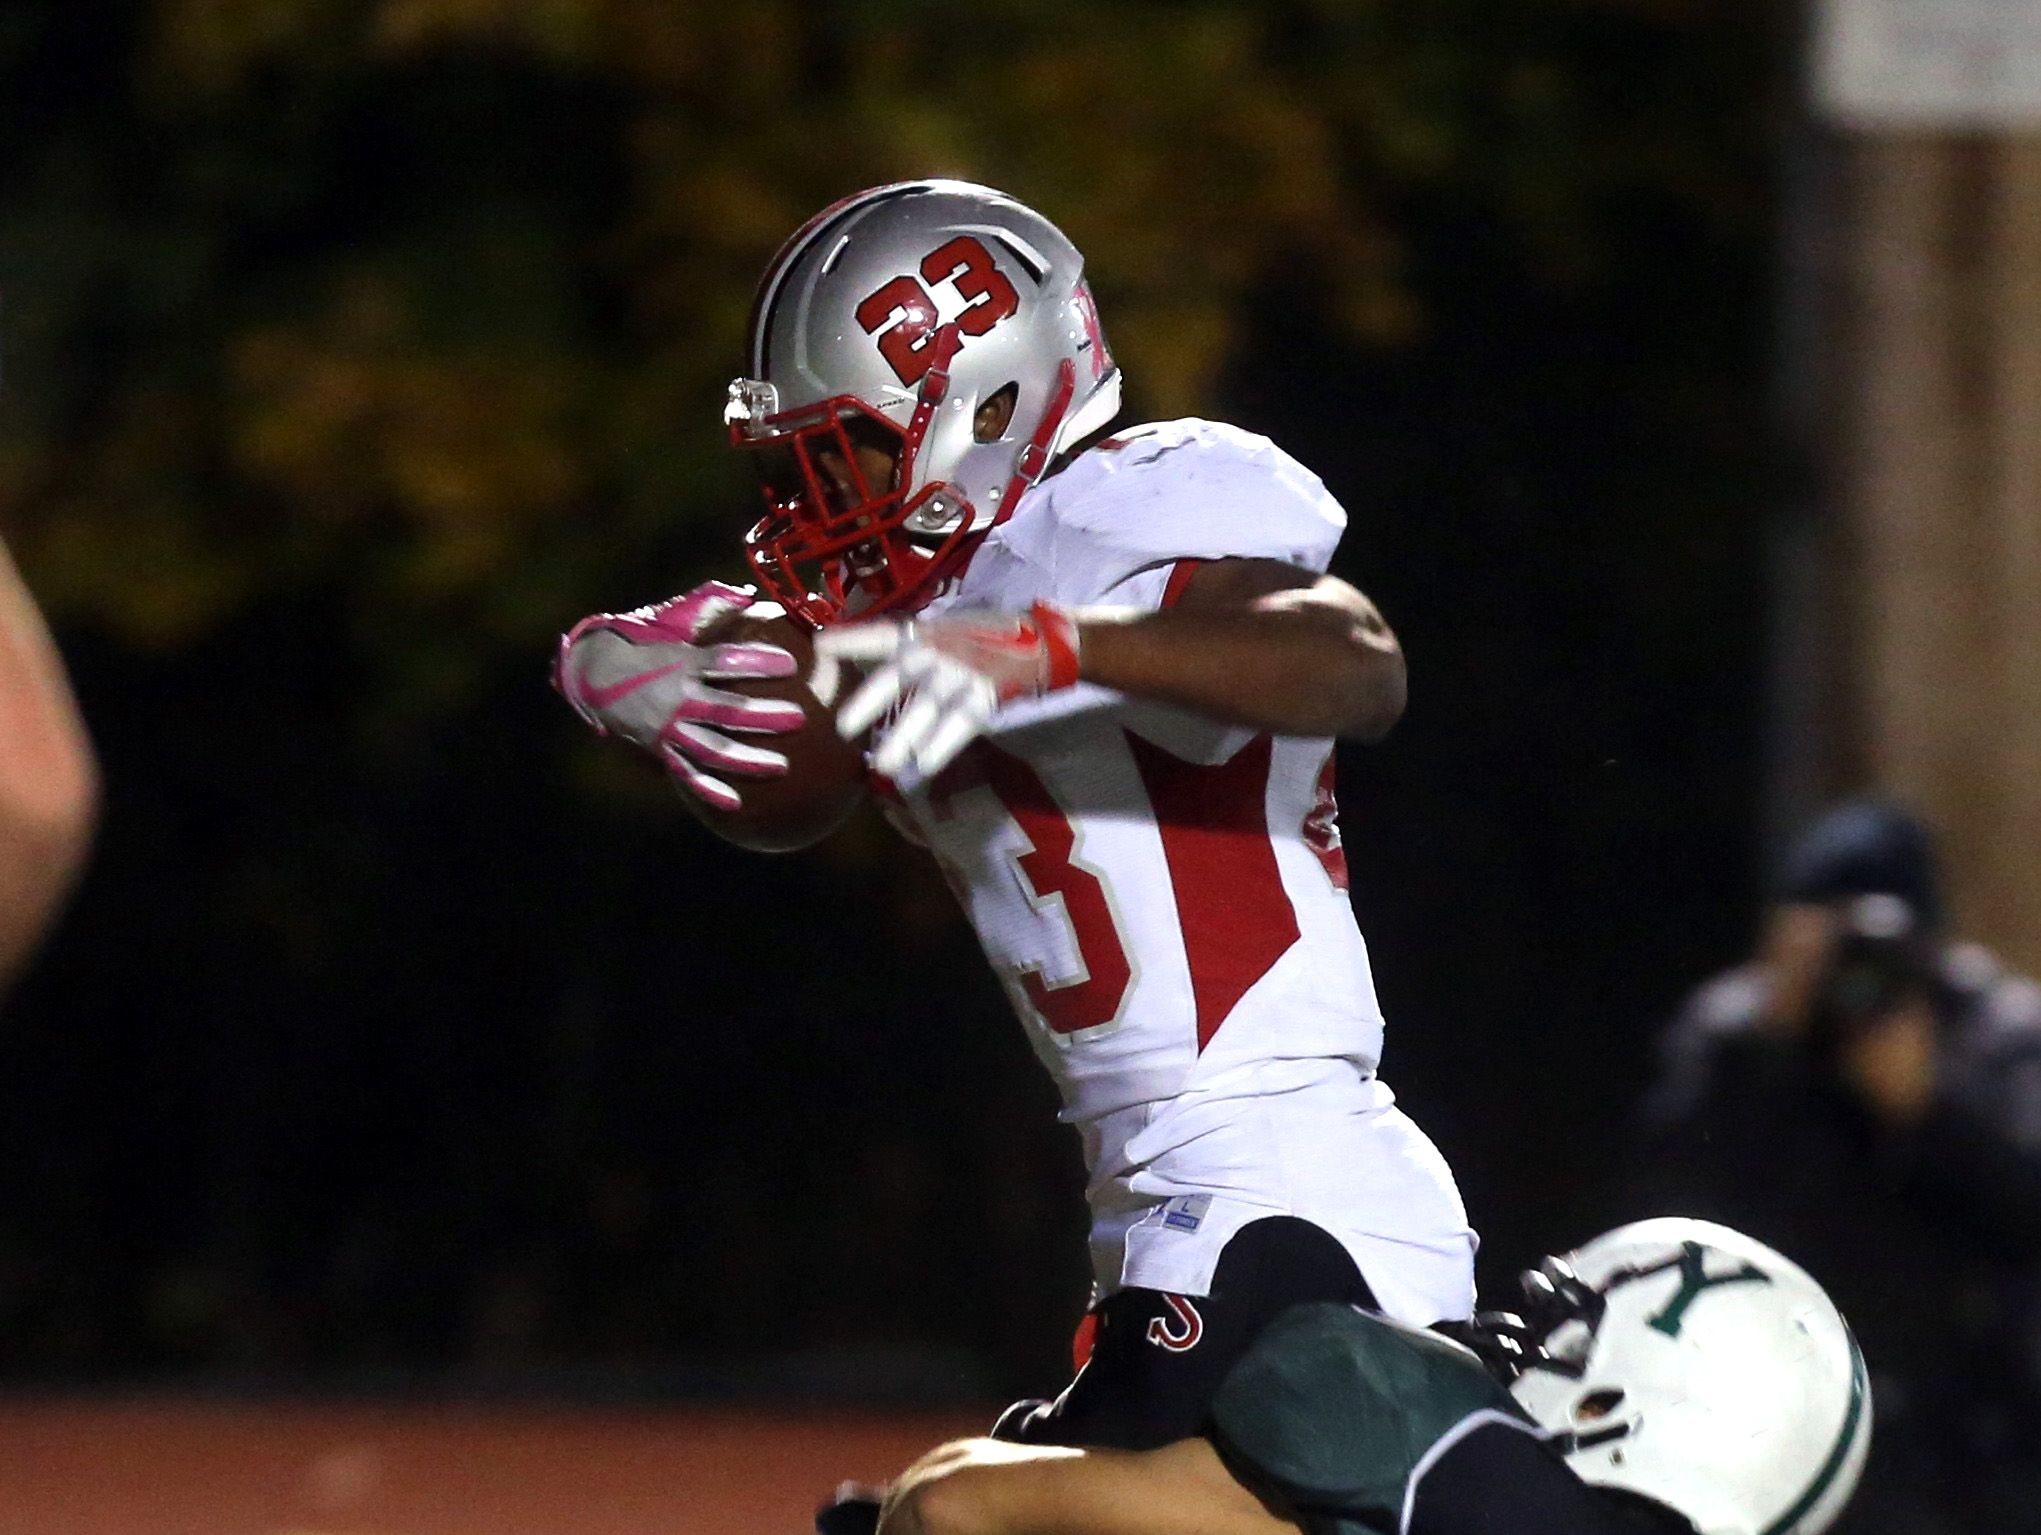 Messiah Horne of Somers takes Yorktown's Dominick Cijoffi into the end zone as he scores during the Section 1 Class A football championship at Mahopac High School Nov. 6, 2016.